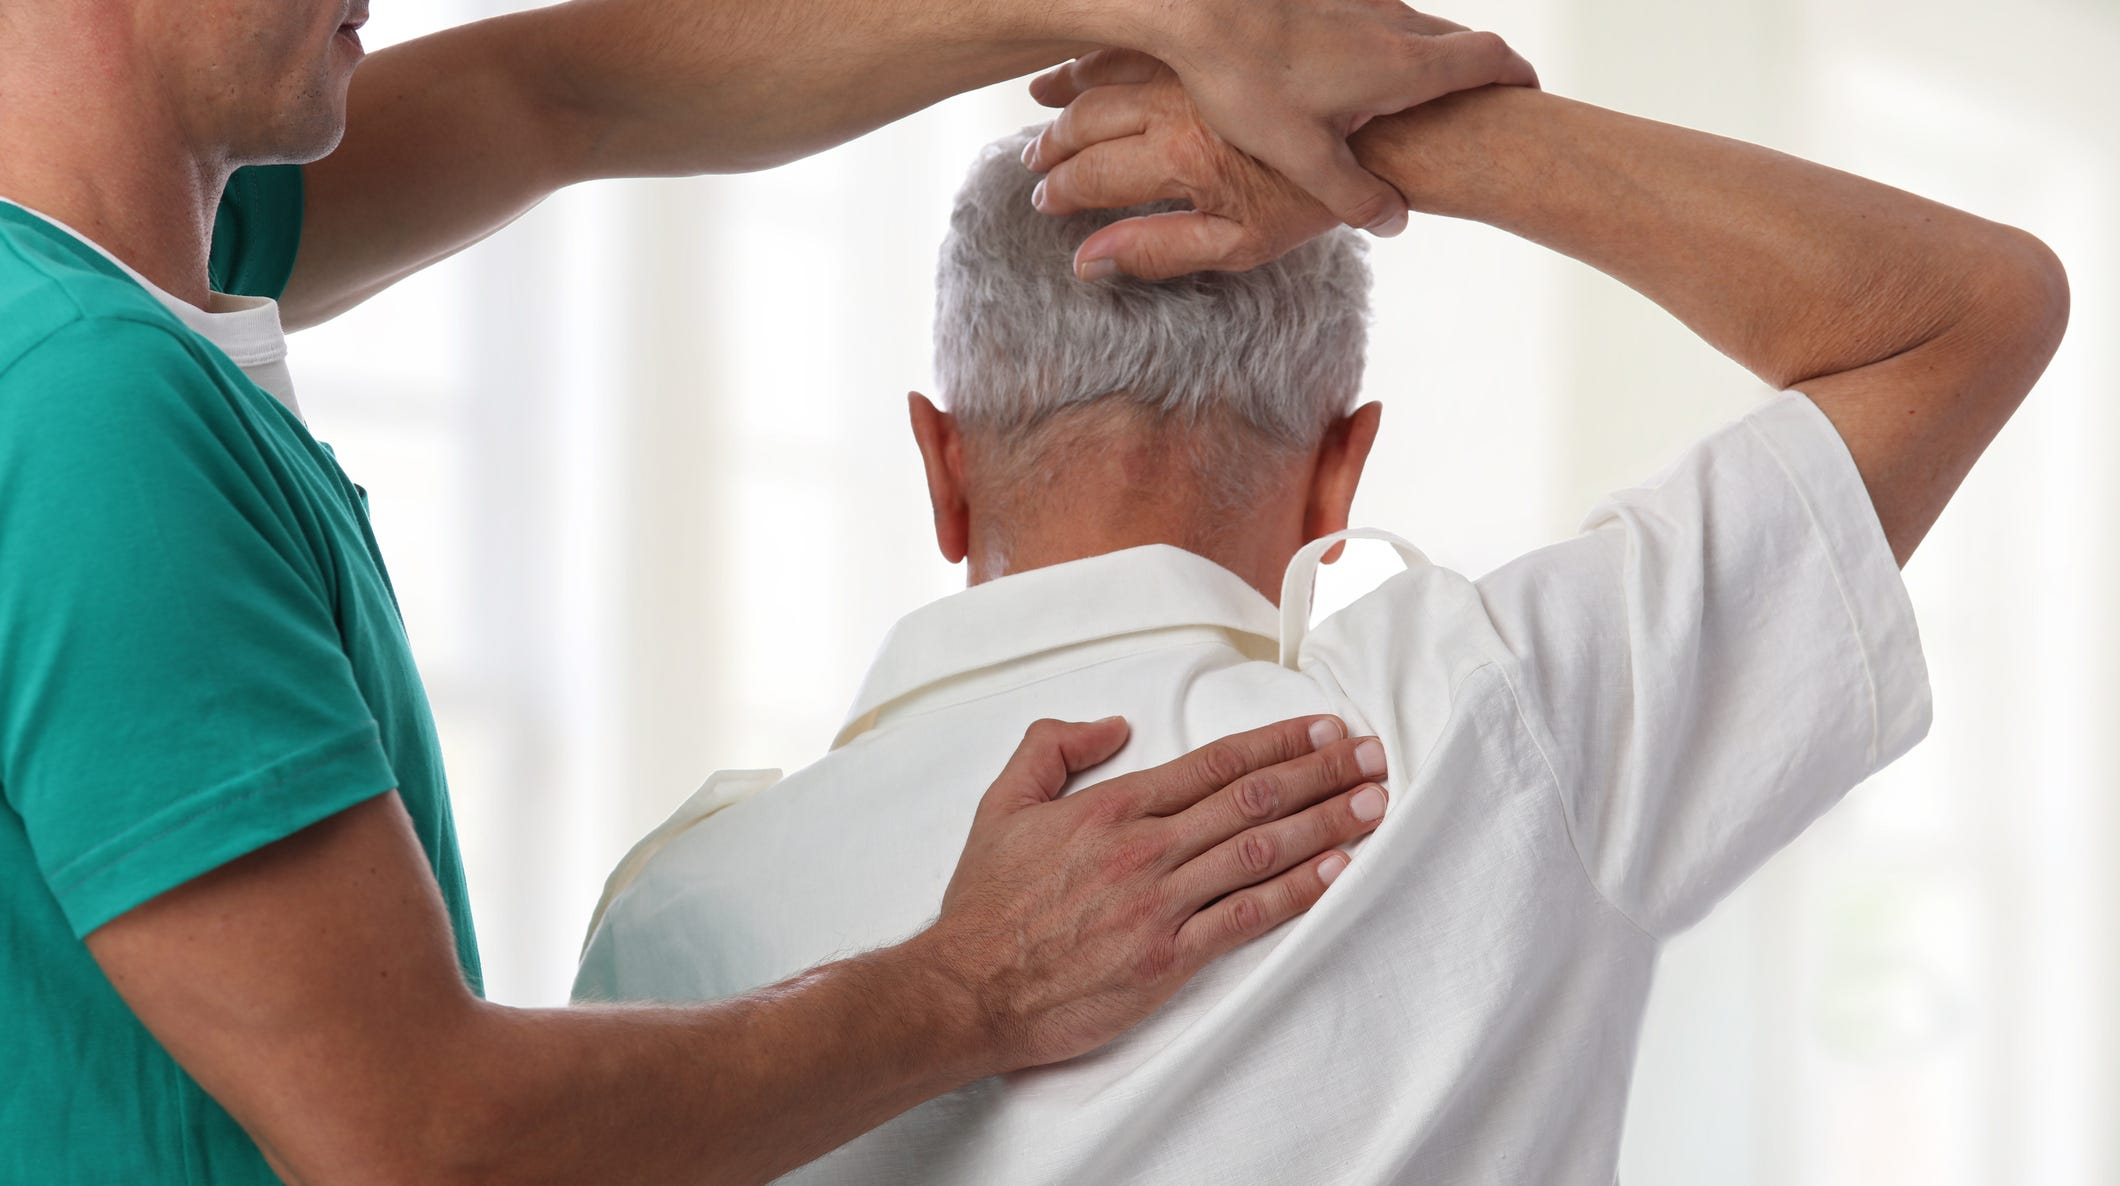 Patients are sometimes nervous about spinal manipulation — they've heard about or experienced forceful adjustments with twisting or jerking motions. Wootton uses adjustments that are targeted and gentle, called the Pierce method.